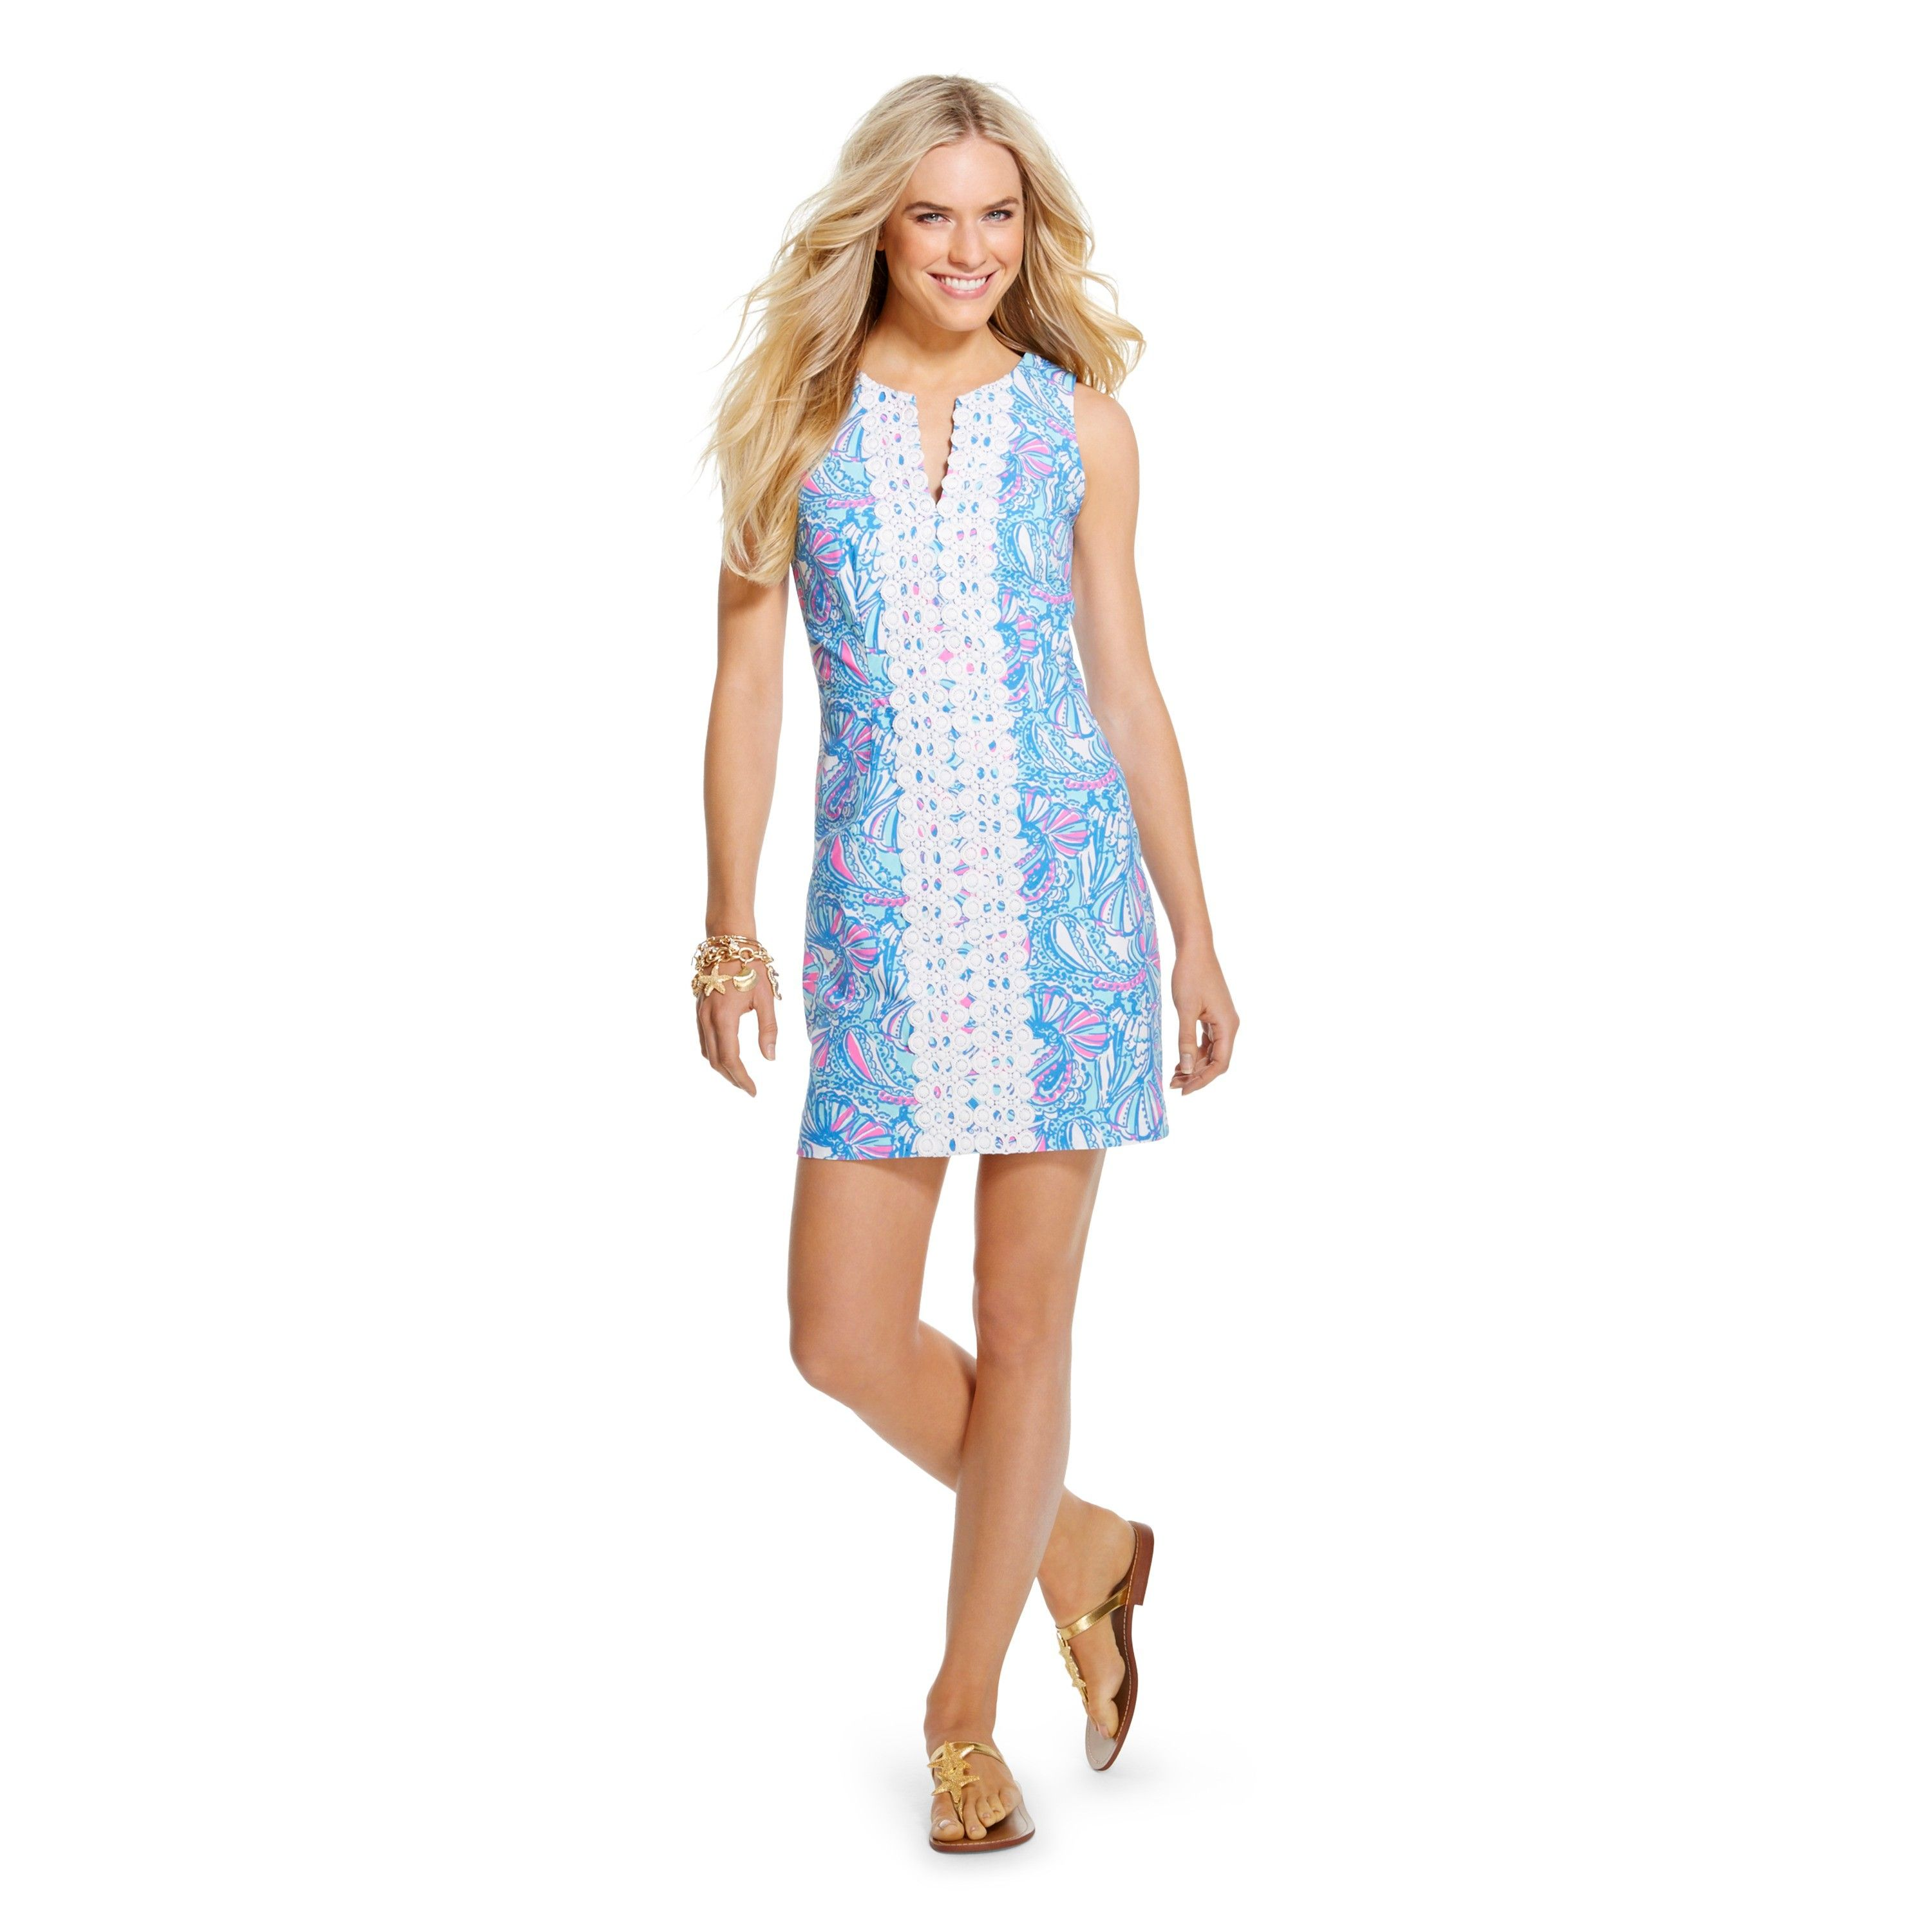 fcc966bf7ac Lilly Pulitzer for Target Women s Shift Dress - ...   Target